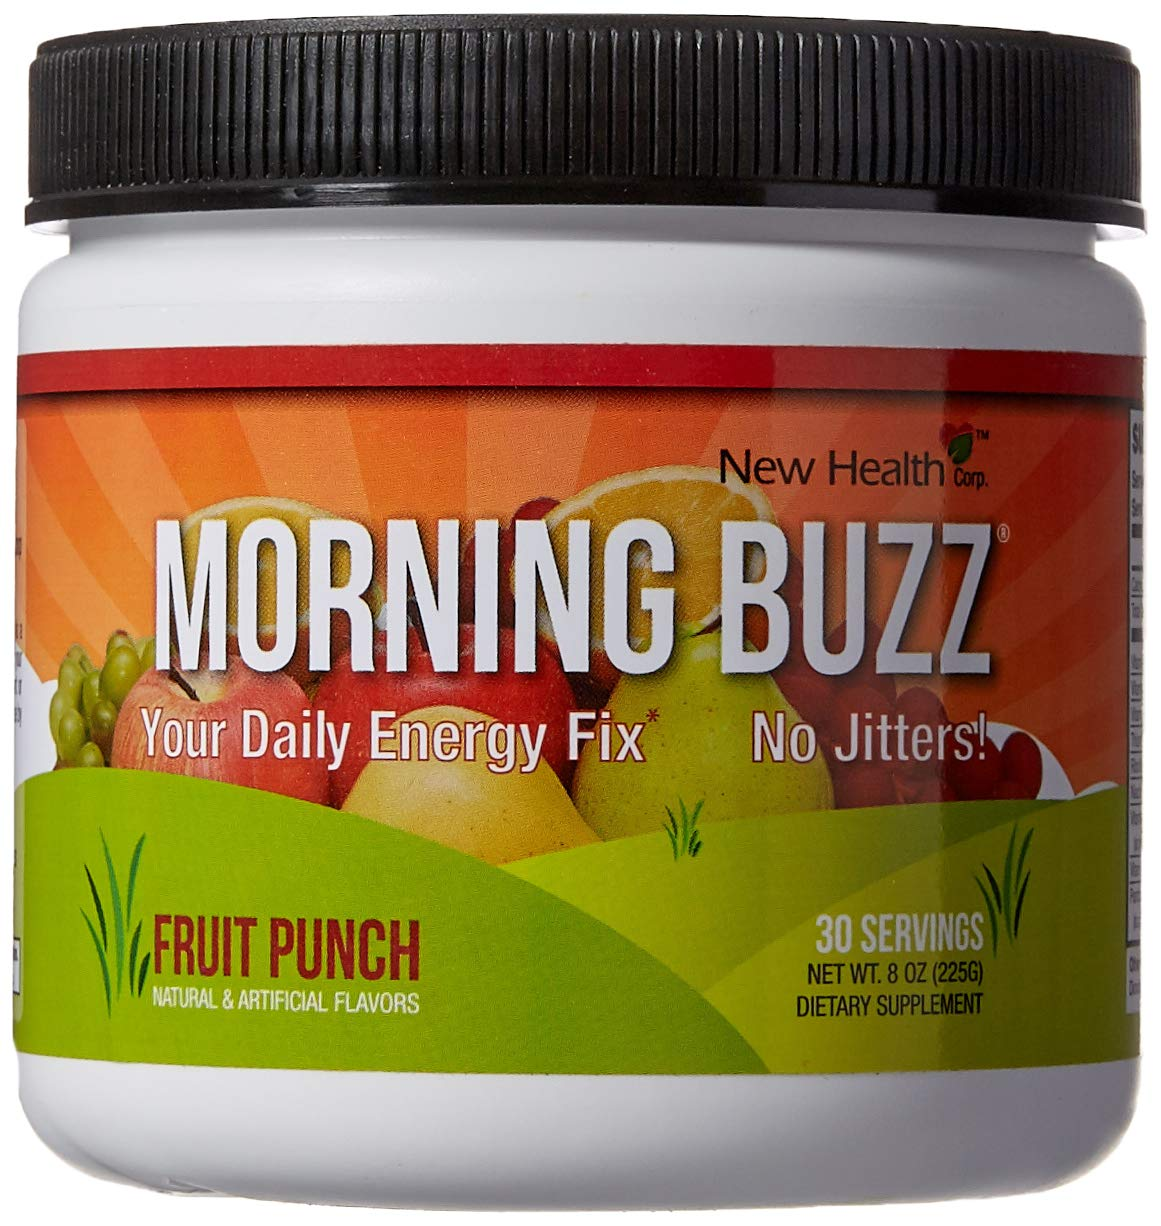 Morning Buzz Sports Energy Drink by New Health, Pre Workout, Sports Nutrition Drink, Supports Lasting Energy, Endurance, Mental Clarity, and Metabolism, 8 Ounce Powder Mix, 30 Servings by Mountain Health